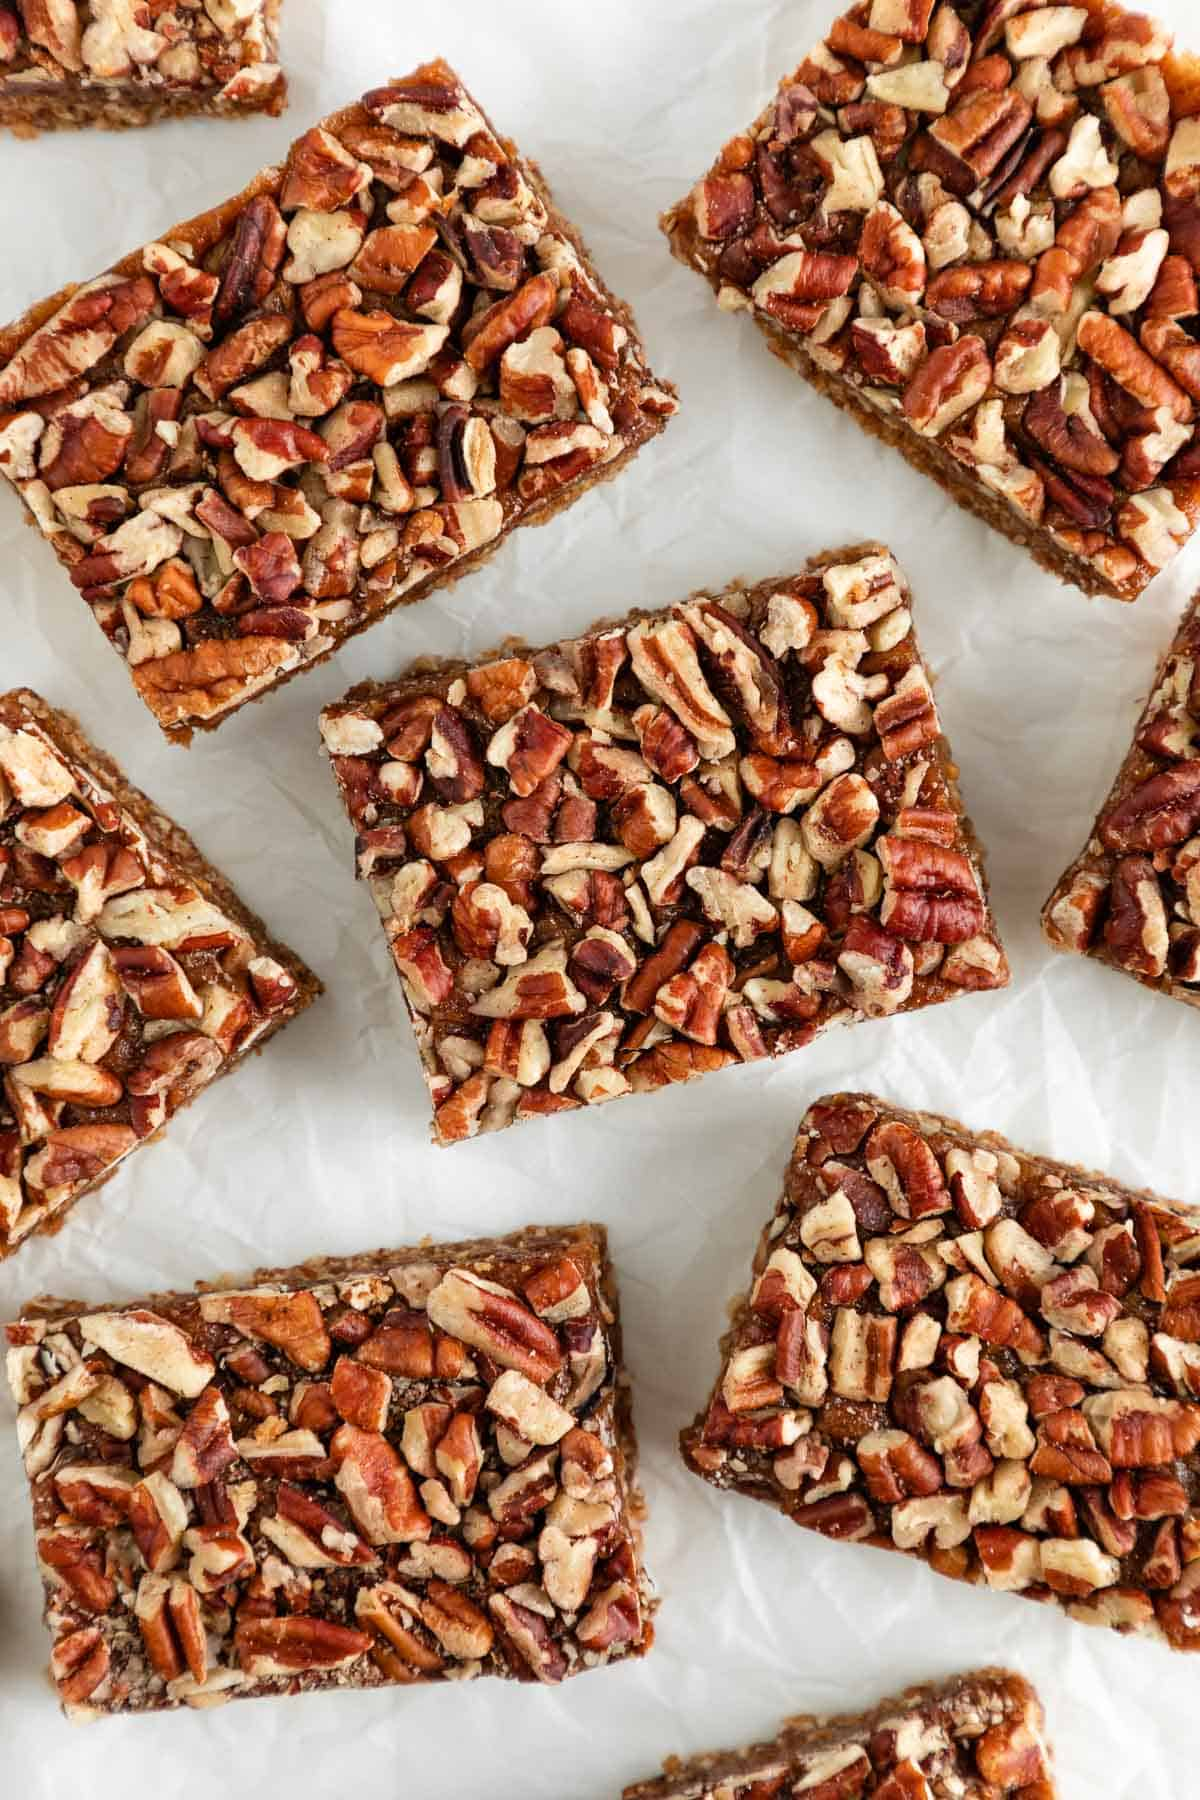 5 vegan gluten-free pecan pie bars on top of a white surface